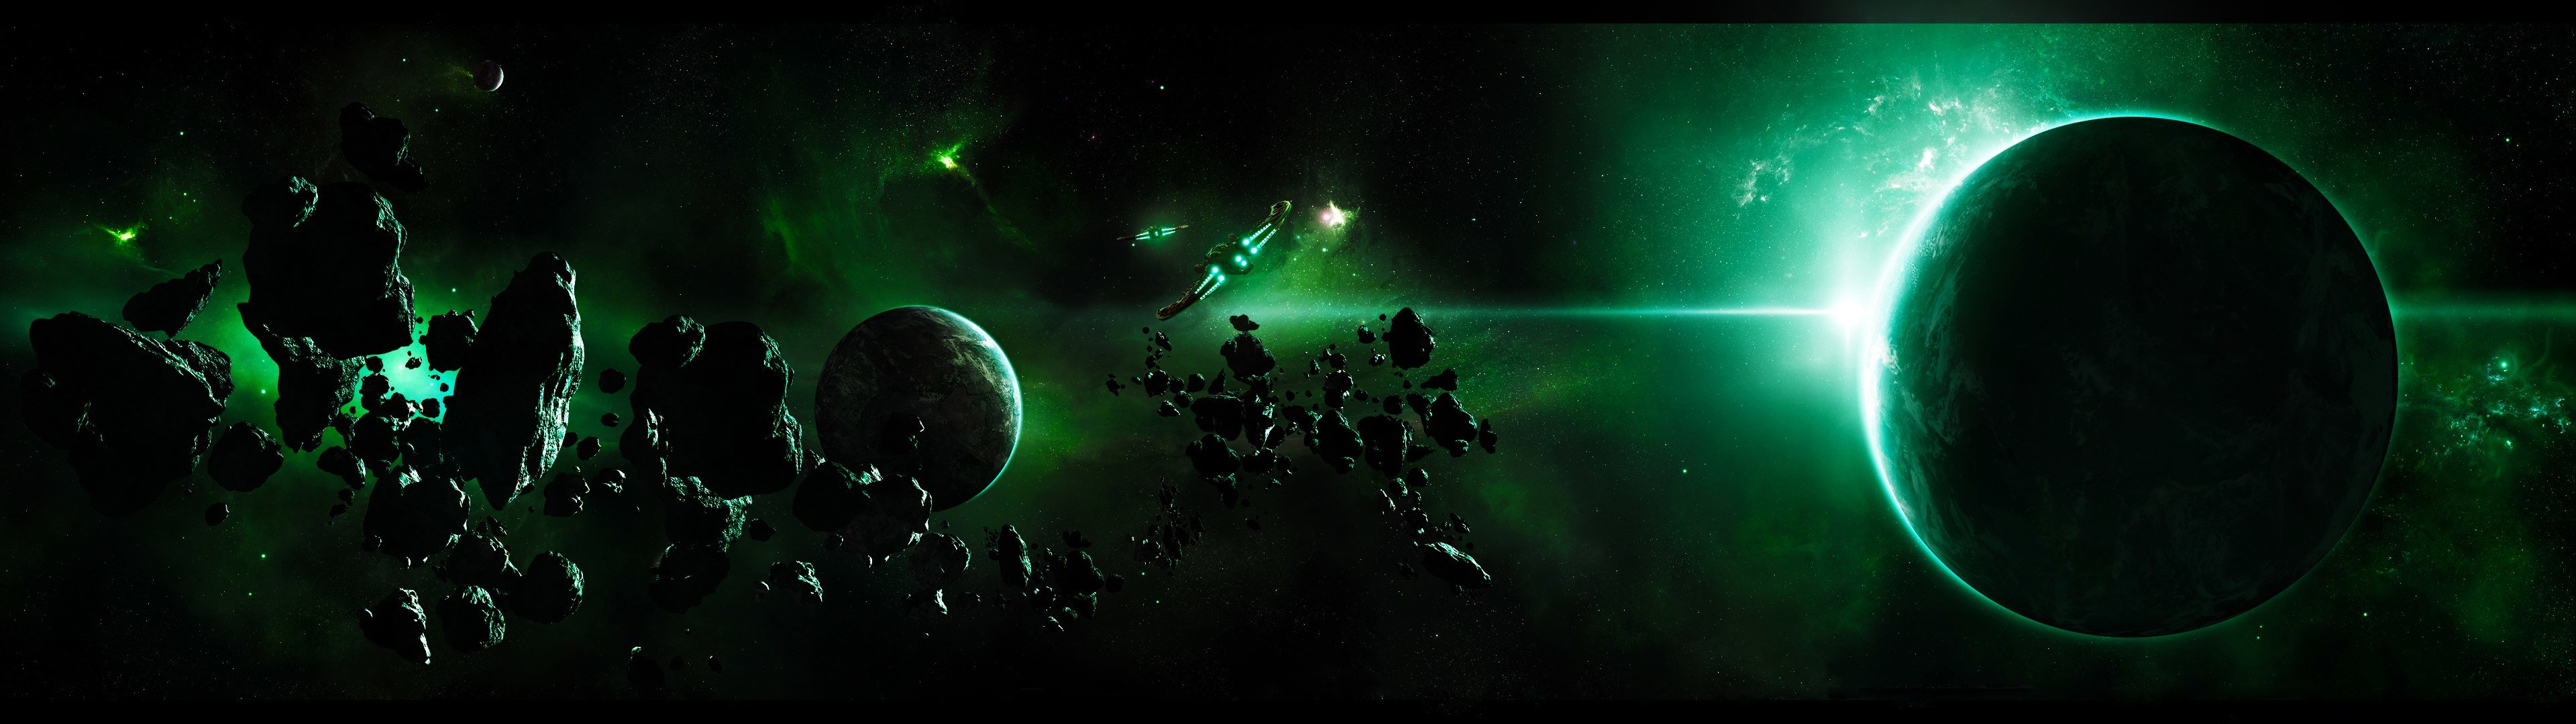 Download dual screen 3840x1080 Planets desktop background ID:153566 for free